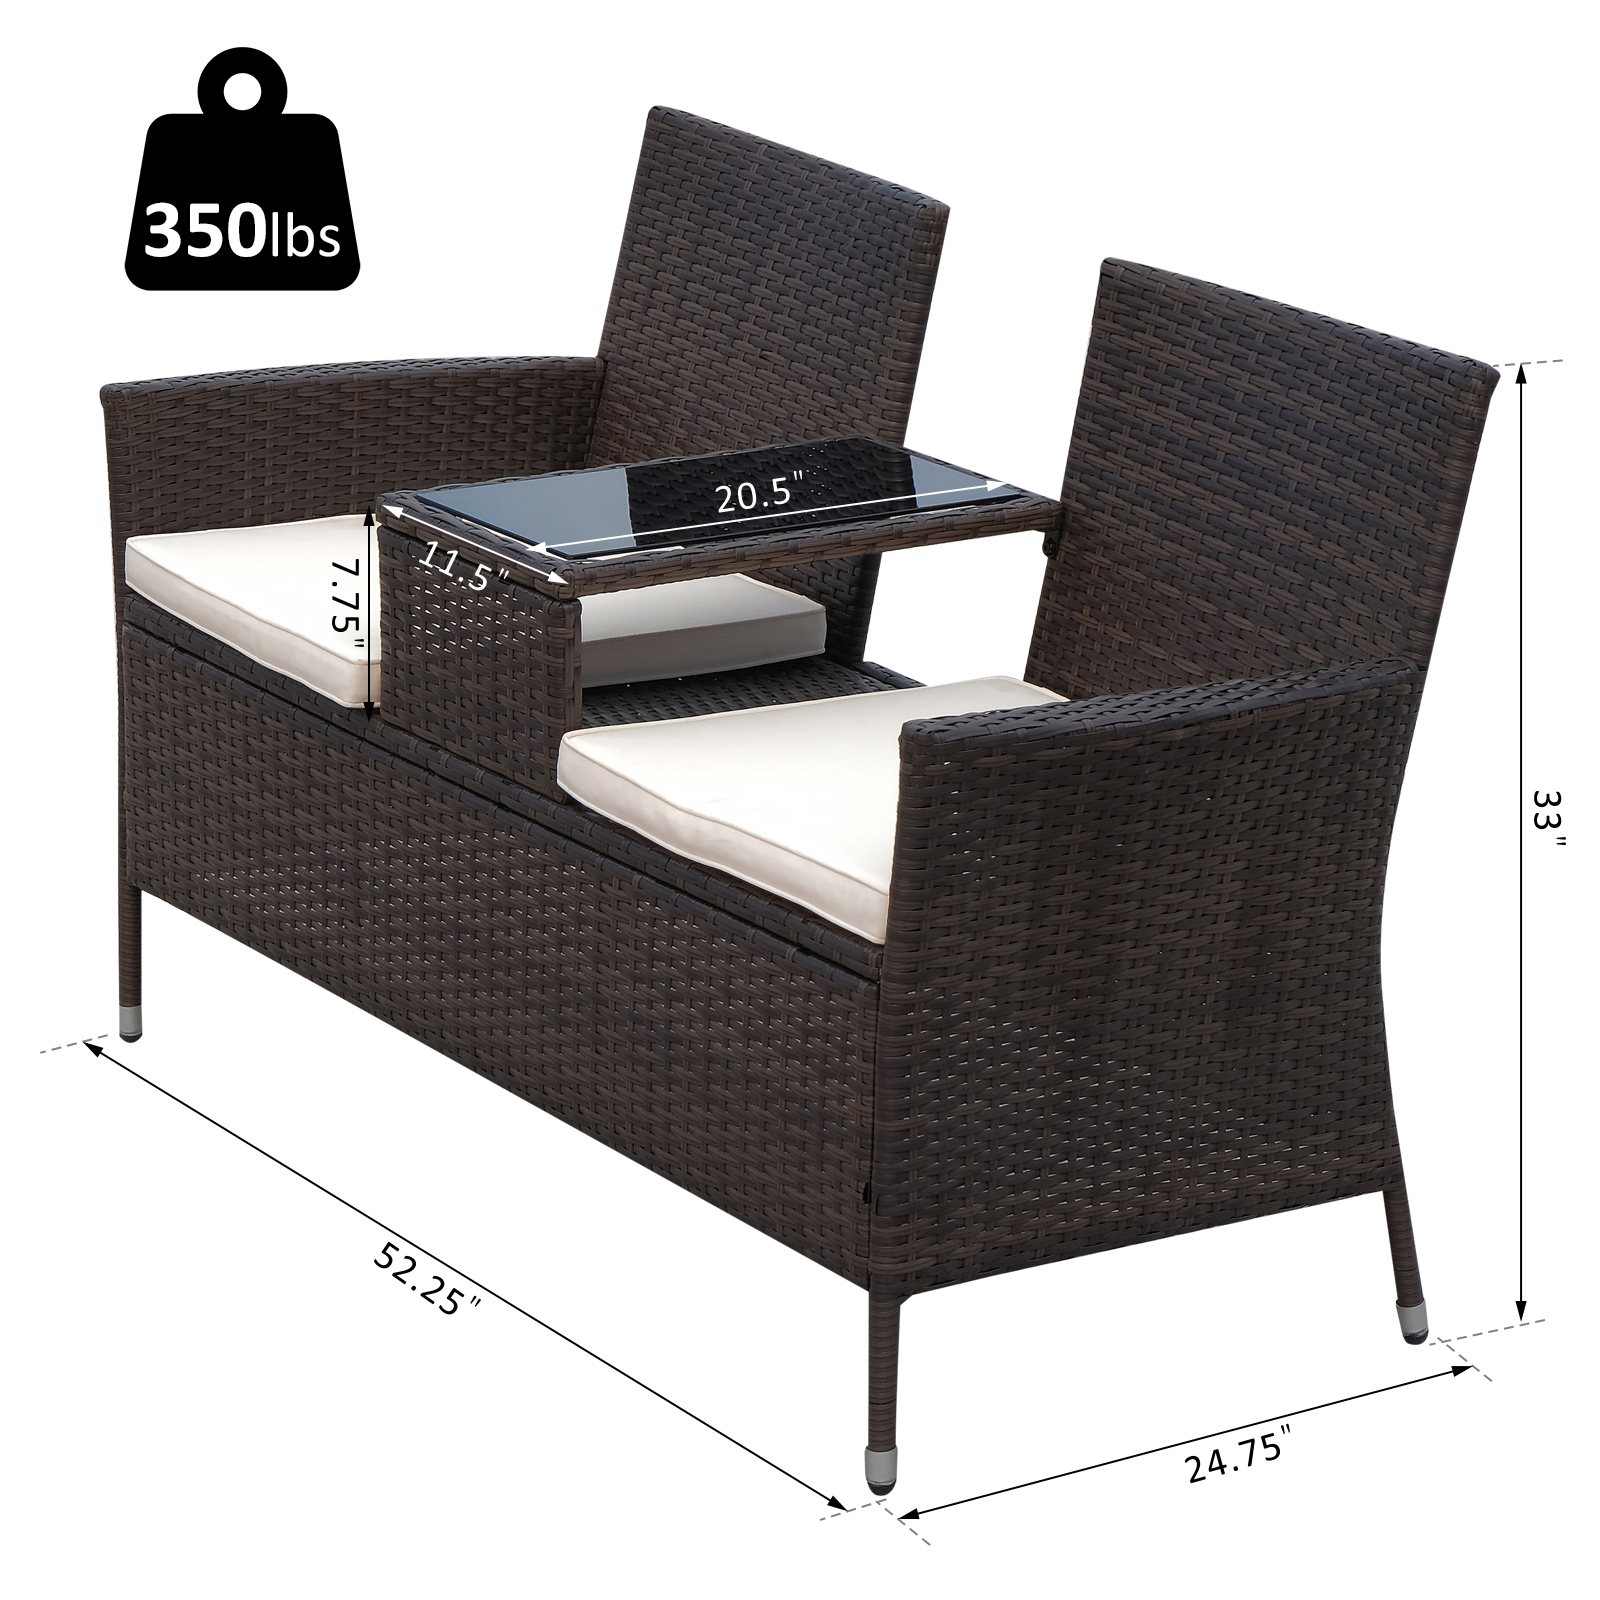 Outsunny 2 Seat Rattan Wicker Chair Bench